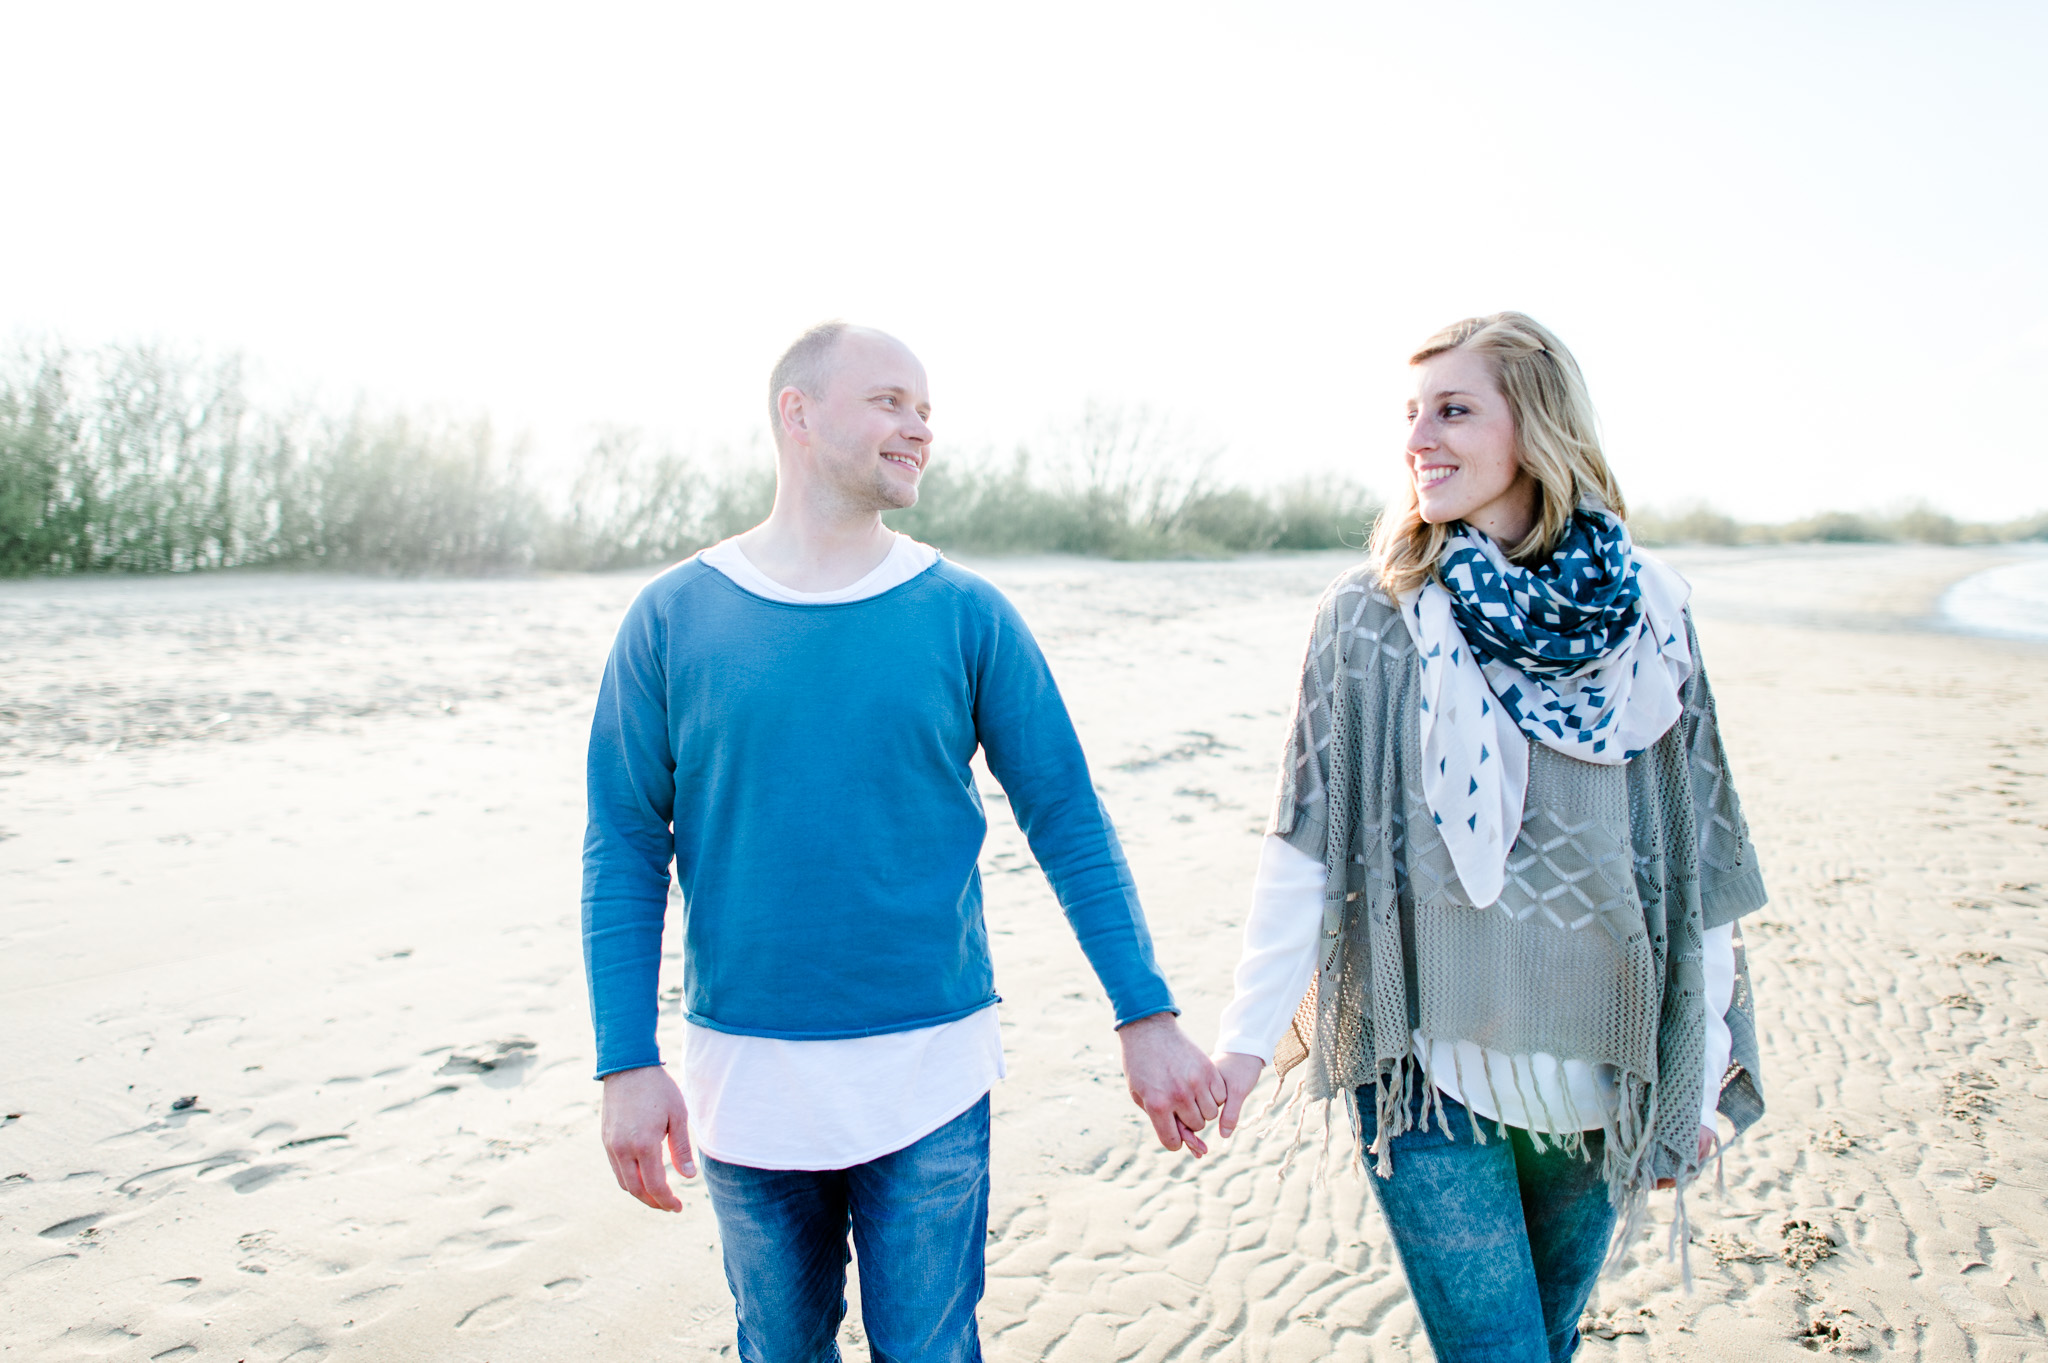 hochzeitsfotograf-wedding-photography-Engagement-stade-elbe009